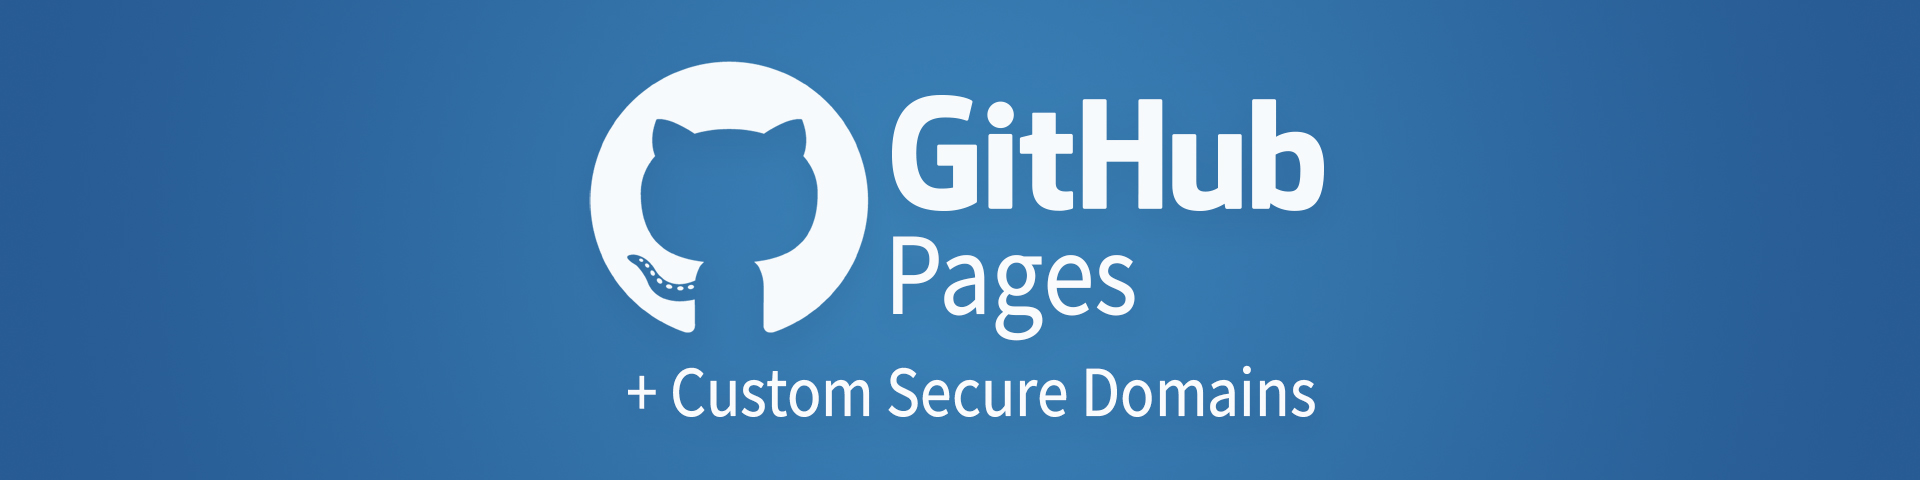 Custom secure domains with GitHub Pages